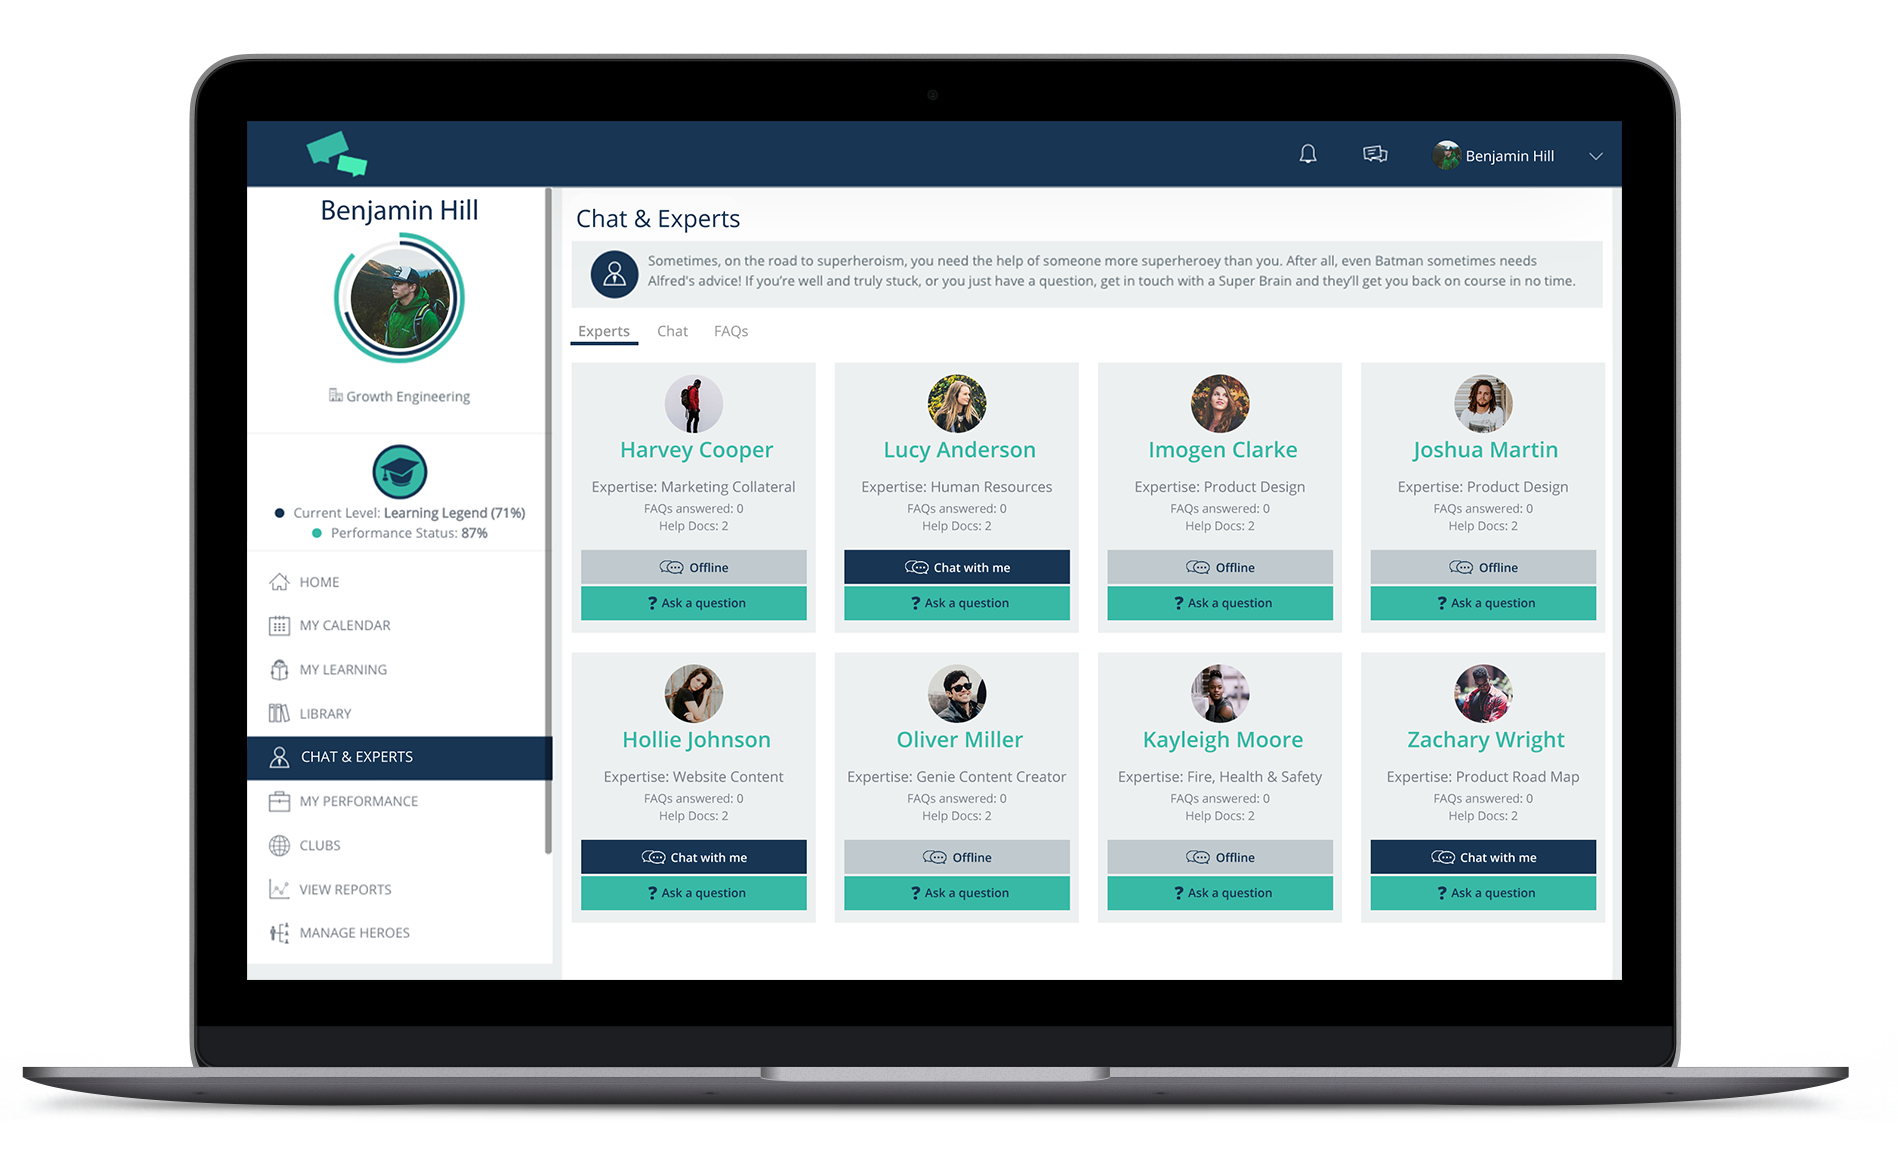 Take advantage of your SMEs by adding Experts Area into your LMS